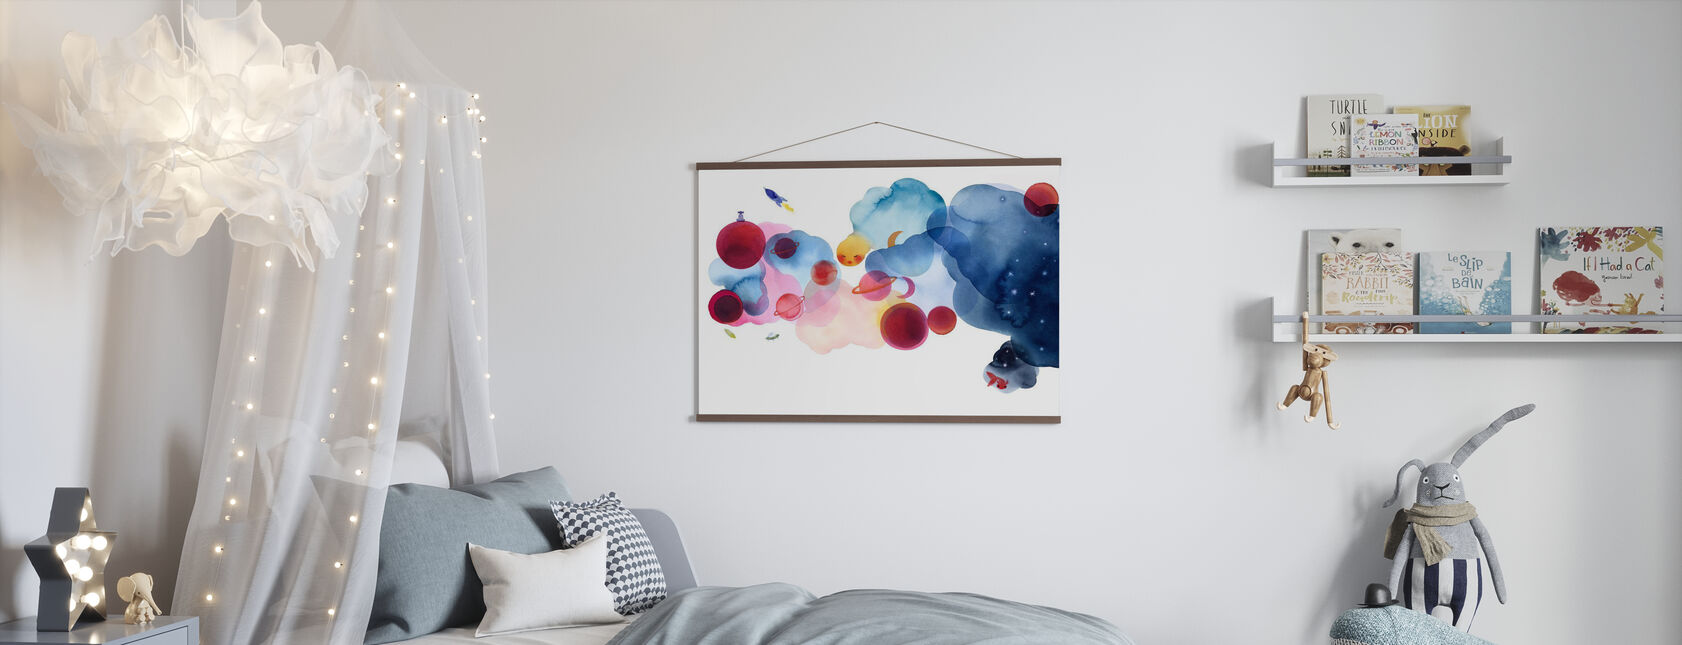 Water Color Space I - Poster - Kids Room